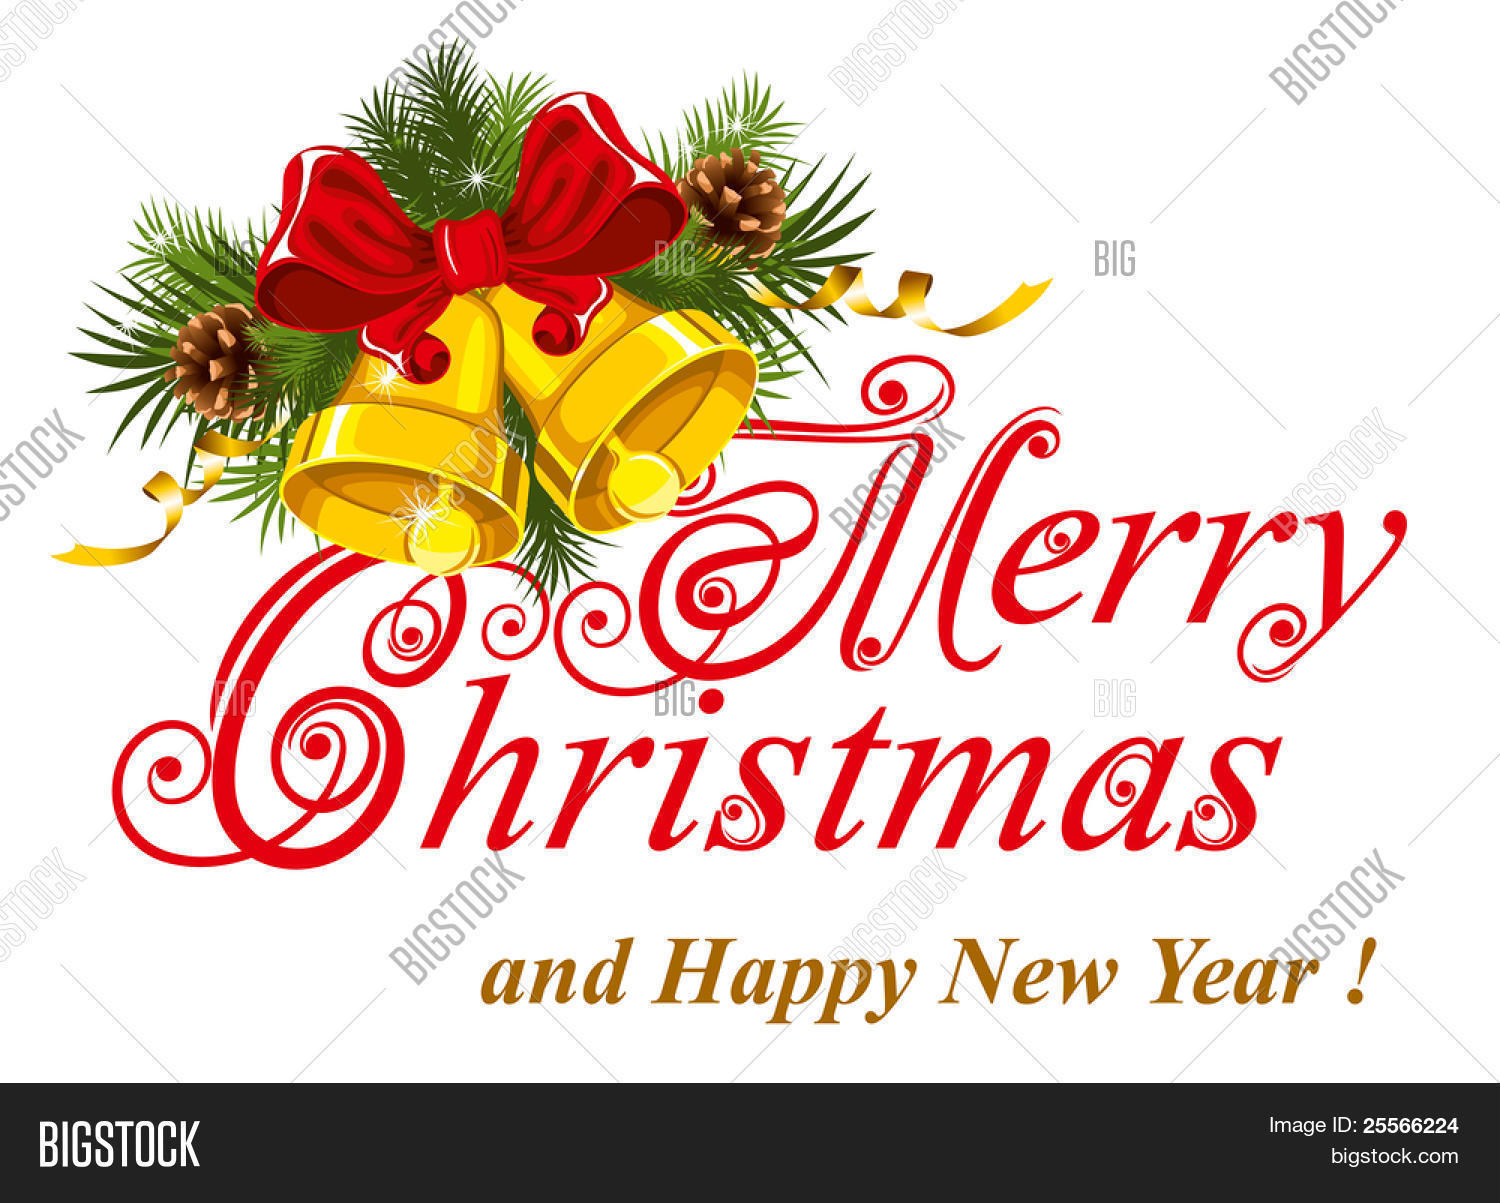 Christmas greetings card merry vector photo bigstock christmas greetings card merry christmas lettering kristyandbryce Choice Image